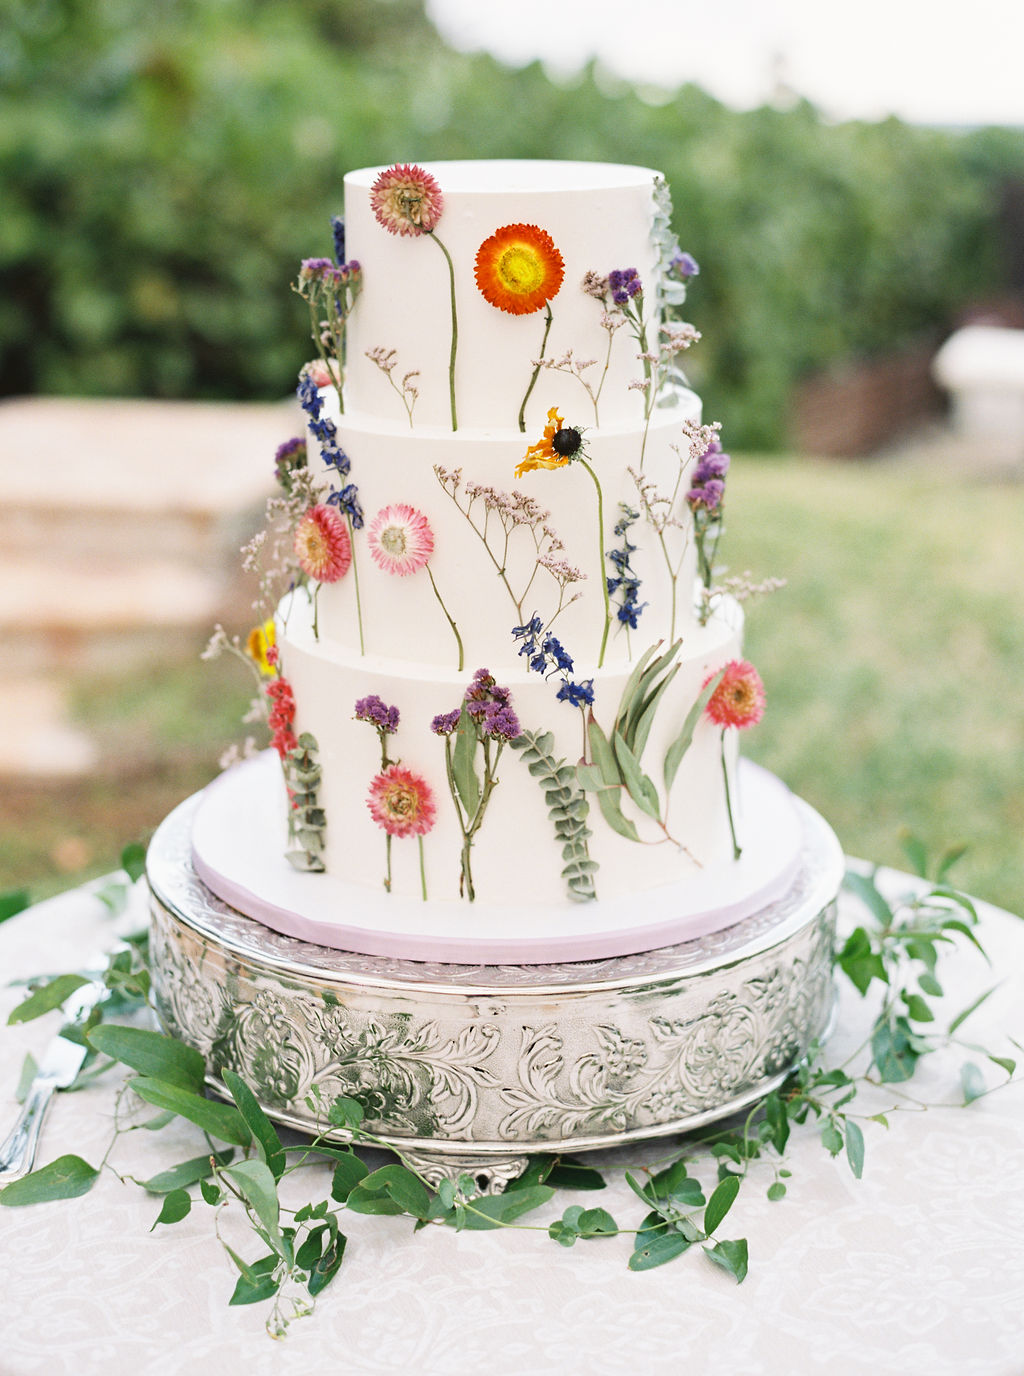 simple white wedding cake with pressed flower decorations